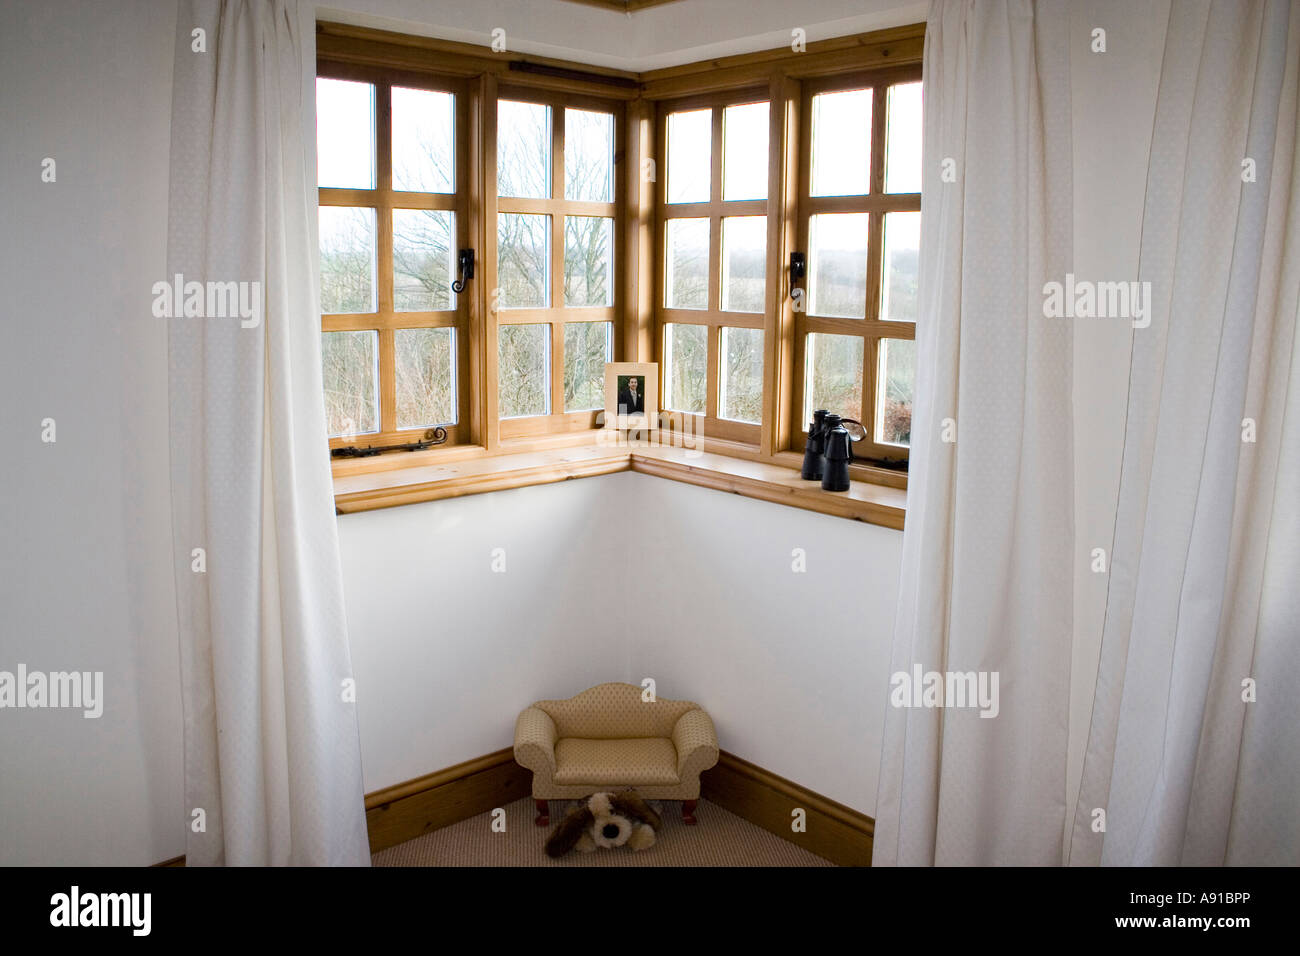 A Corner Window With Wooden Frames And Long White Drapes Or Curtains Stock Photo Alamy